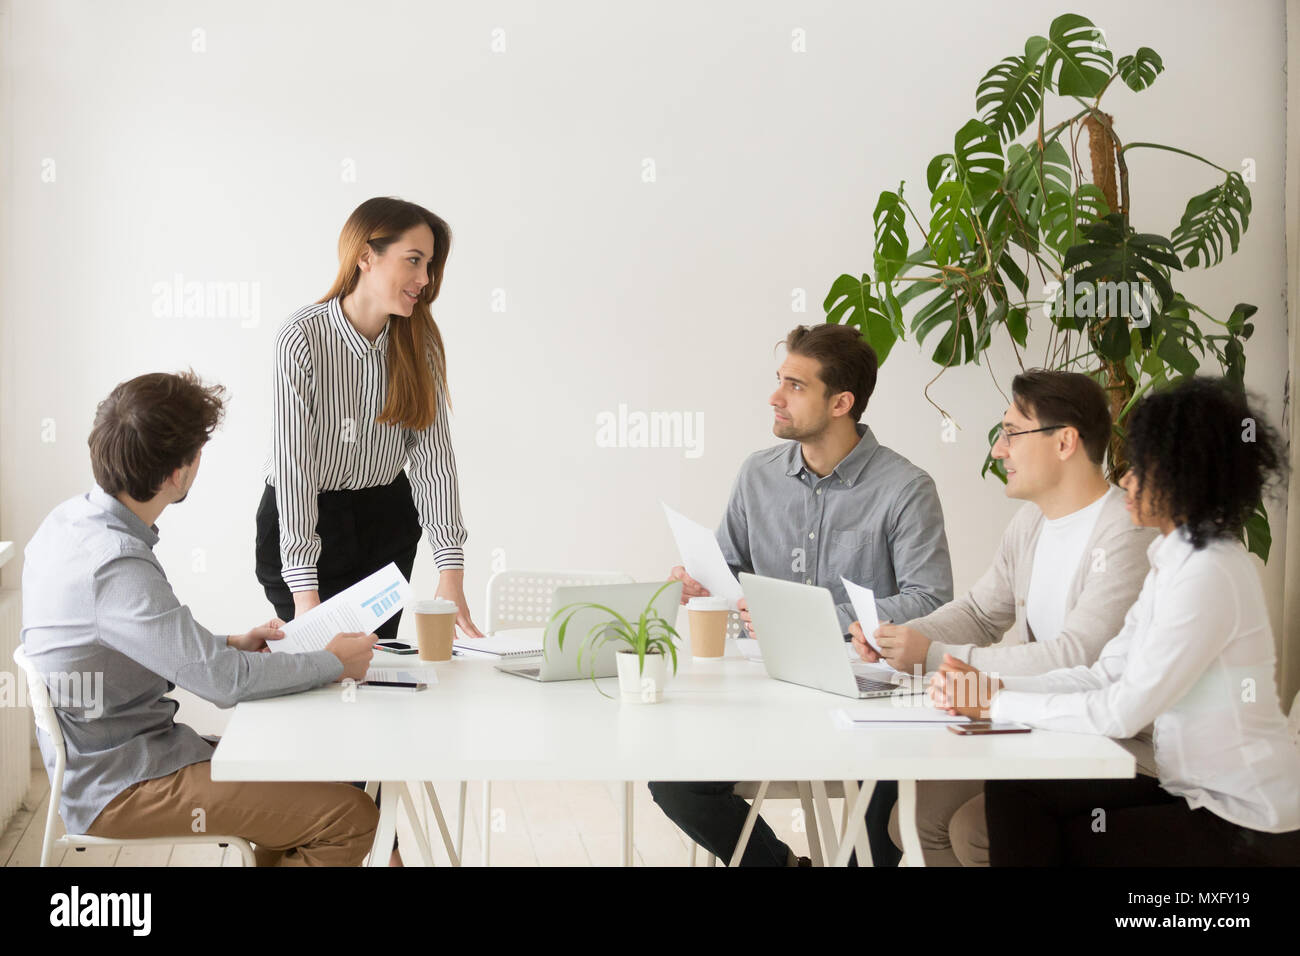 Female business coach making presentation to workers - Stock Image